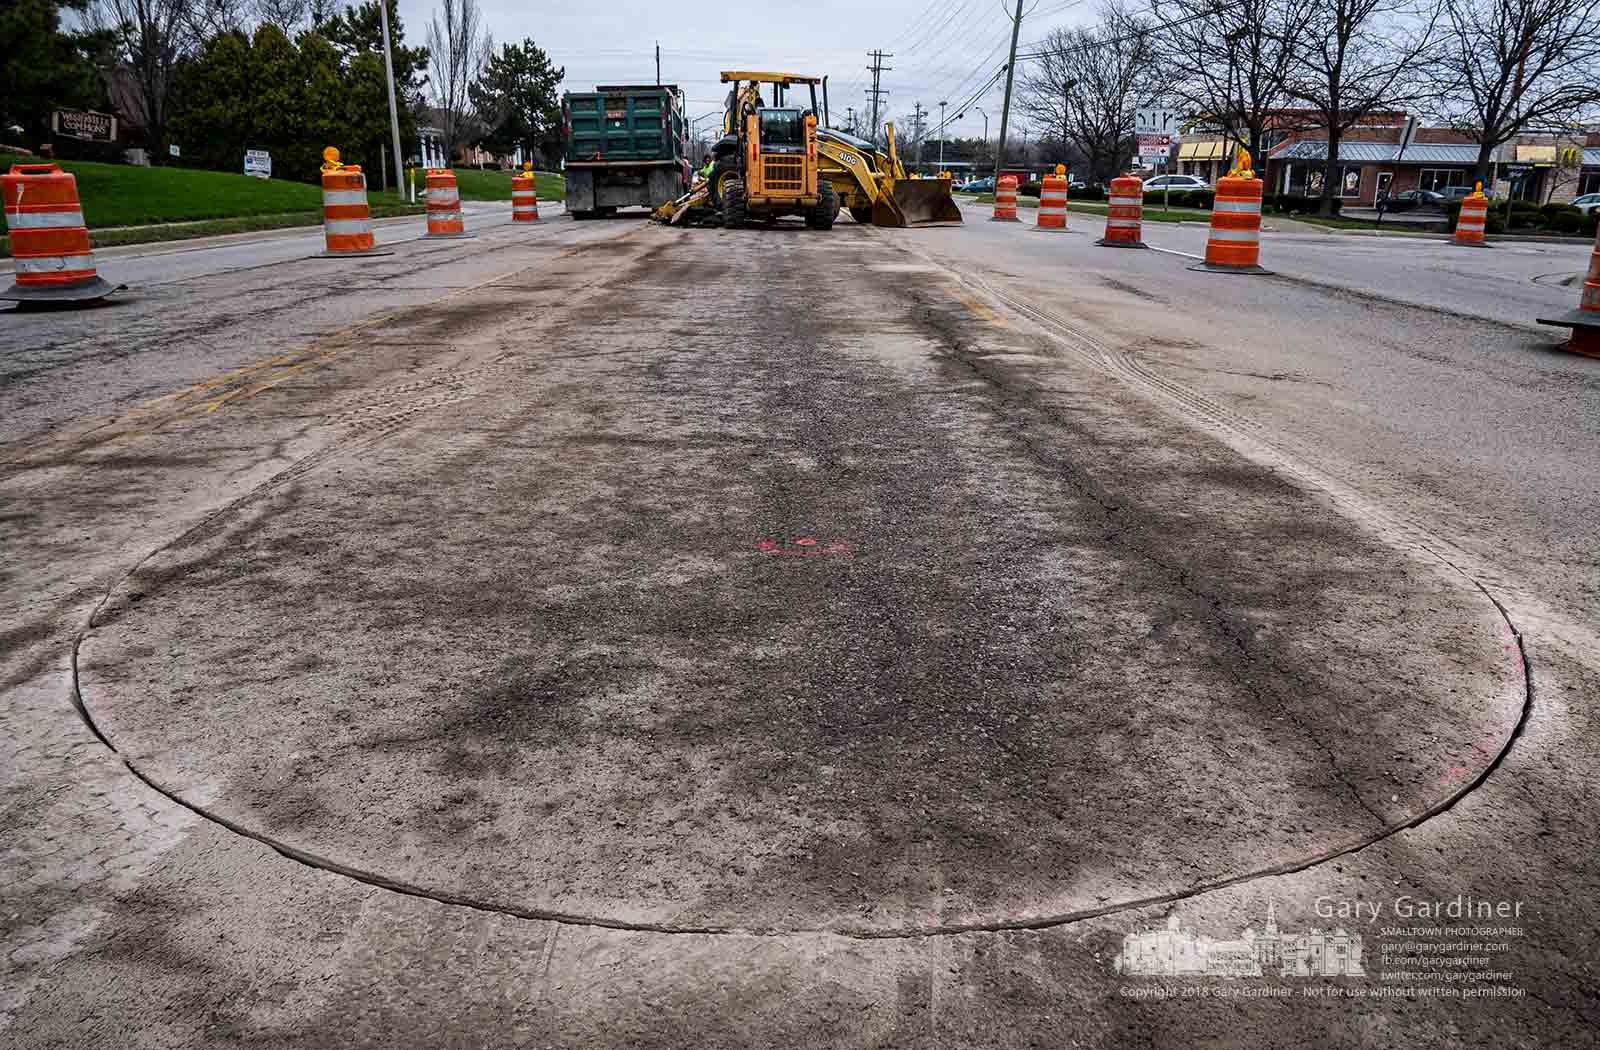 An arced saw cut in the middle of Cleveland Avenue near Main Street marks the end of a new median being installed this week that will remove left turns along that section of the roadway. My Final Photo for April 9, 2018.